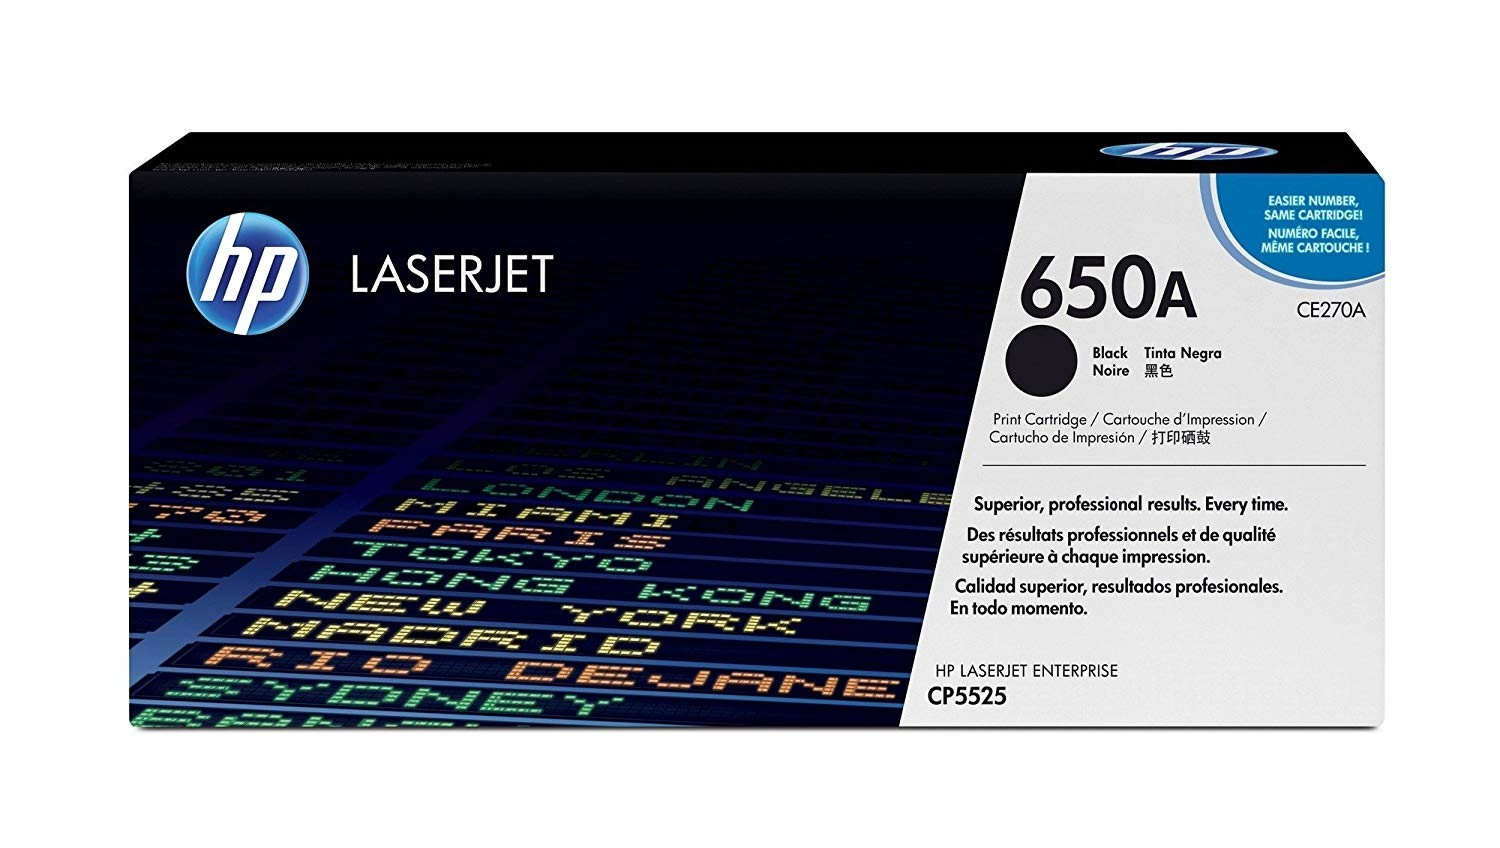 Genuine HP CE270A Black Toner Cartridge (CE270A)